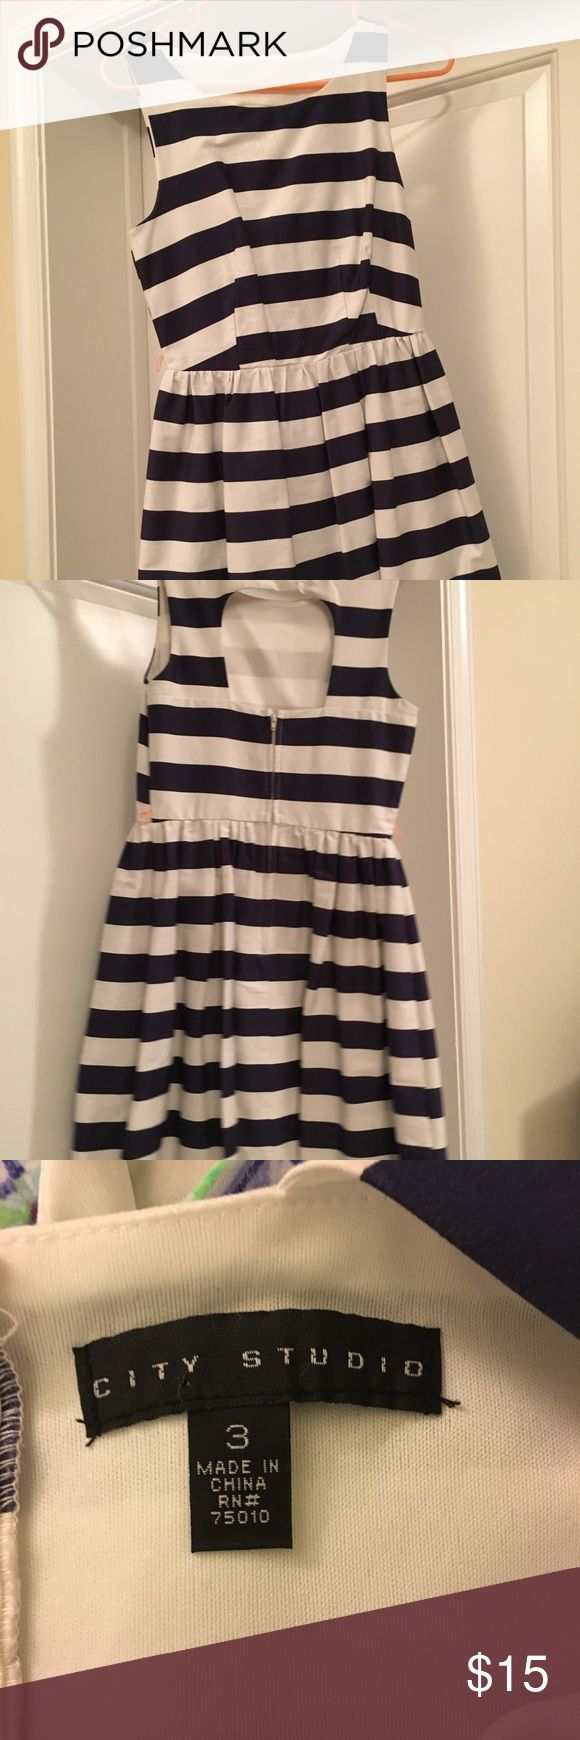 Navy striped dress Navy striped dress- good quality, size 3 Comes with thin pink belt Dresses